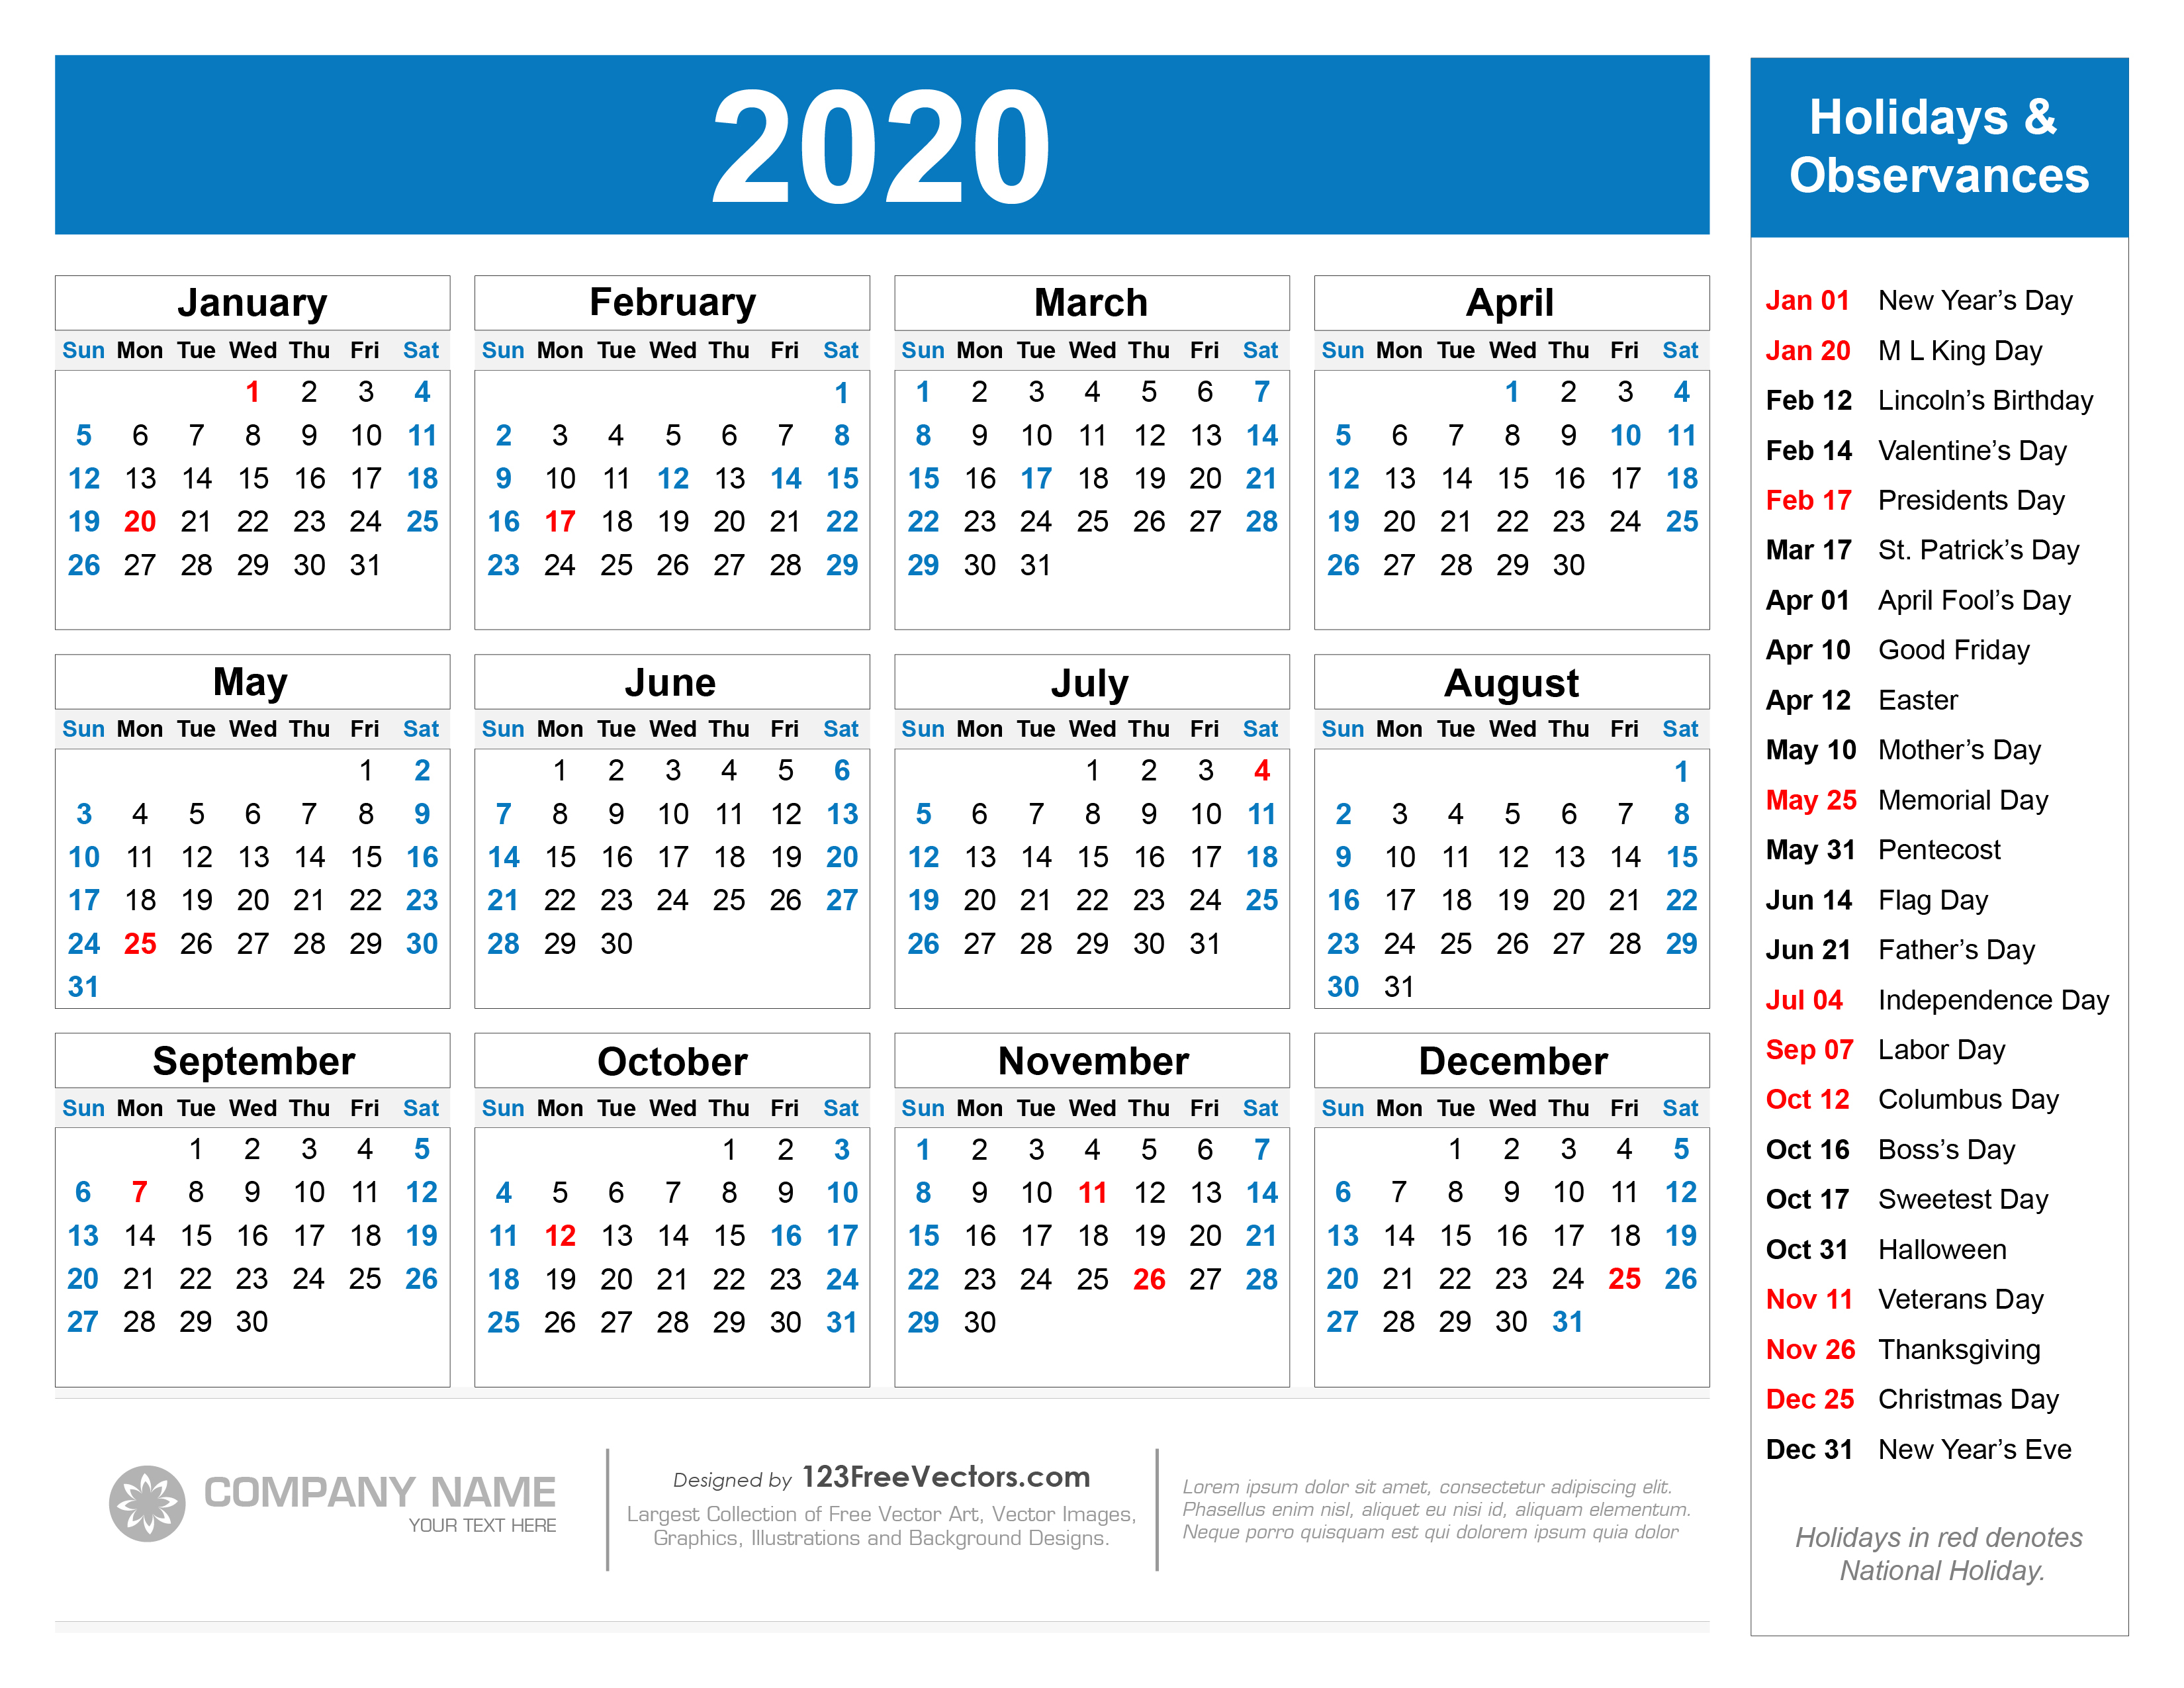 Free Printable 2020 Calendar With Holidays with regard to 2020 Yearly Calendar With Holidays